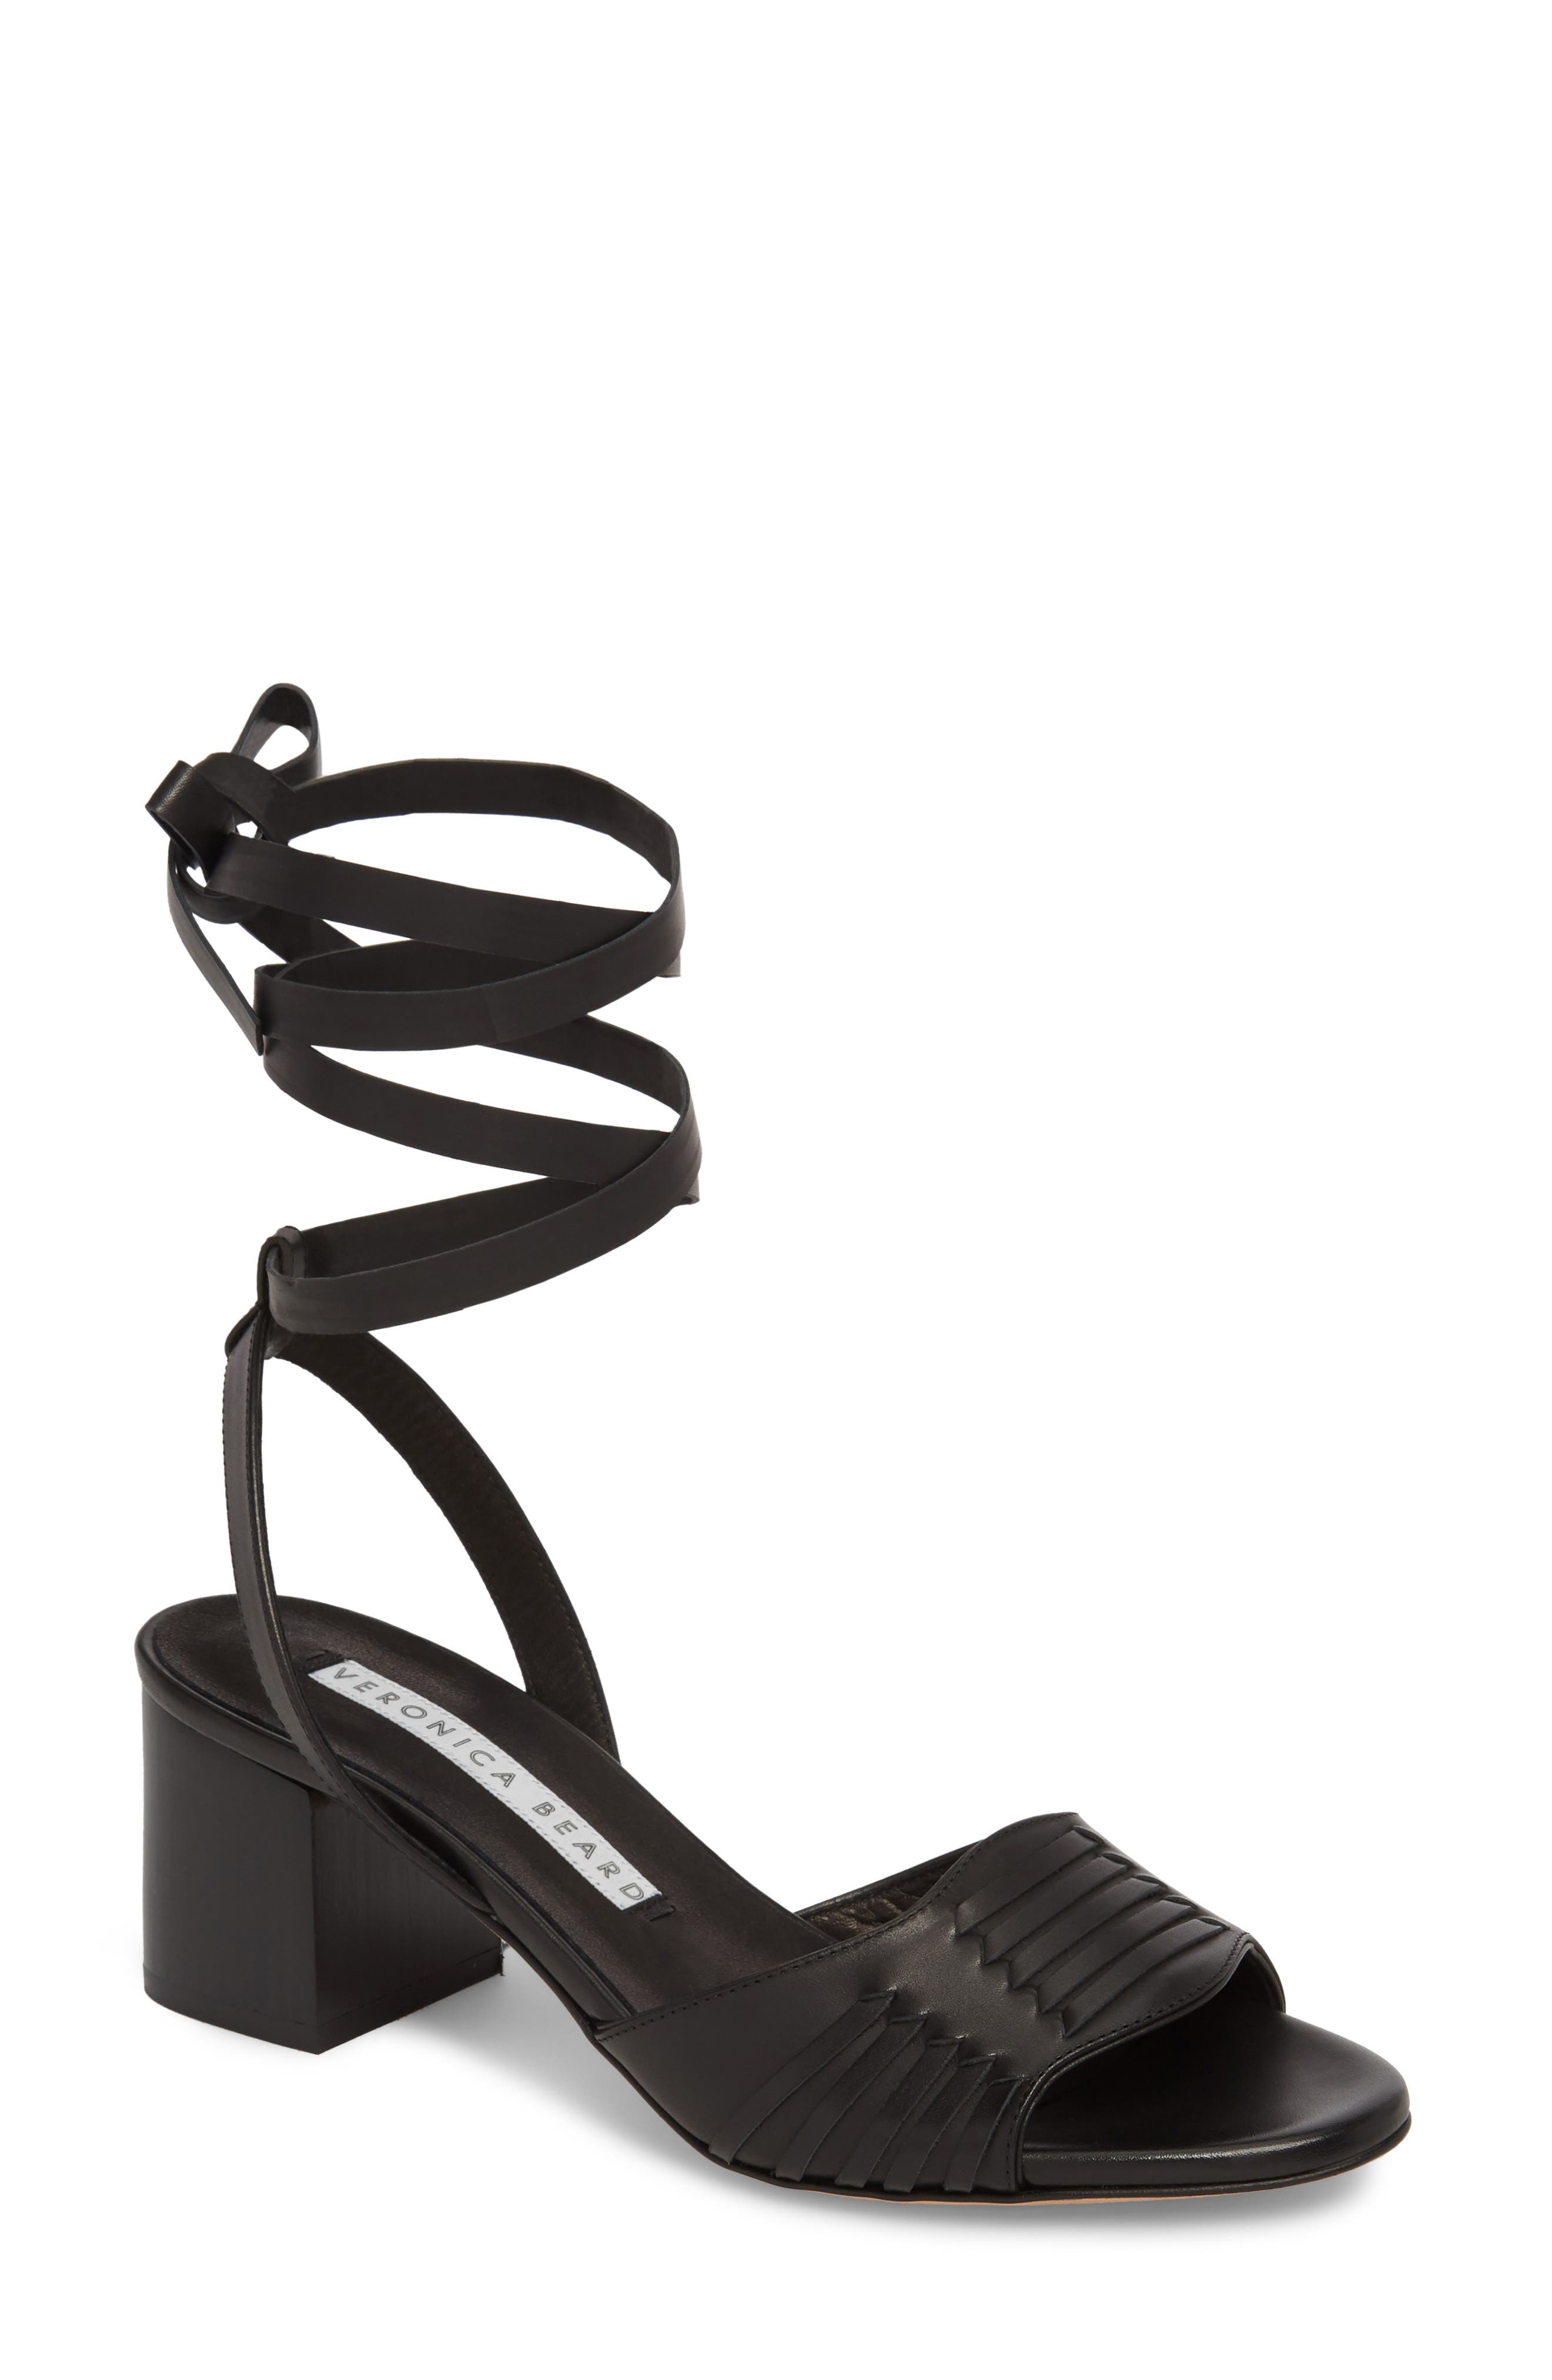 Brody Ankle Wrap Sandal,                             Main thumbnail 1, color,                             001